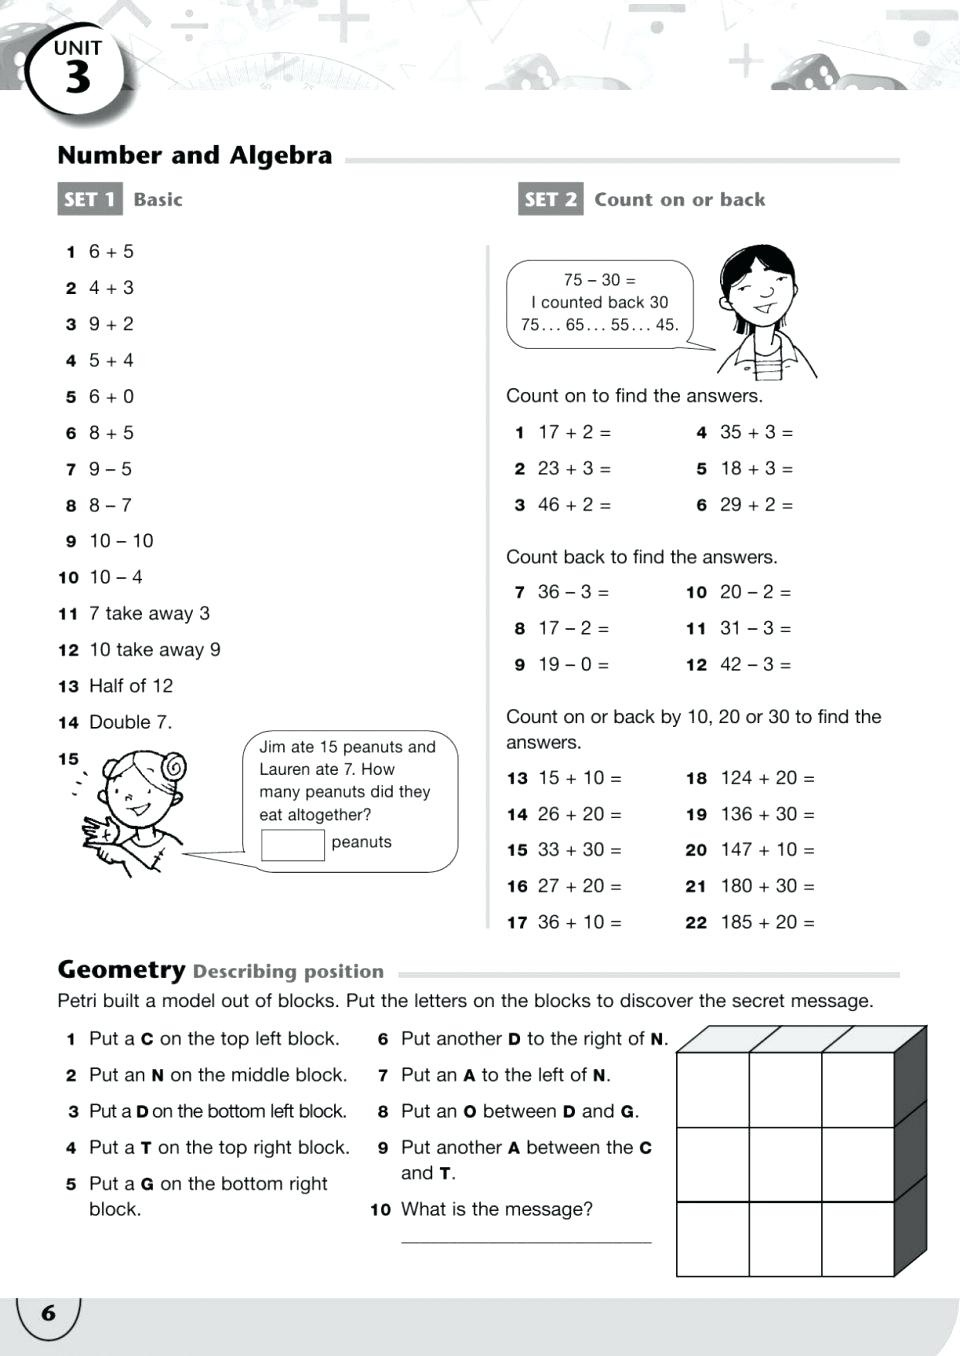 Worksheet : Printable Reading Comprehension Passages Grammar - Free Printable Grammar Worksheets For Highschool Students